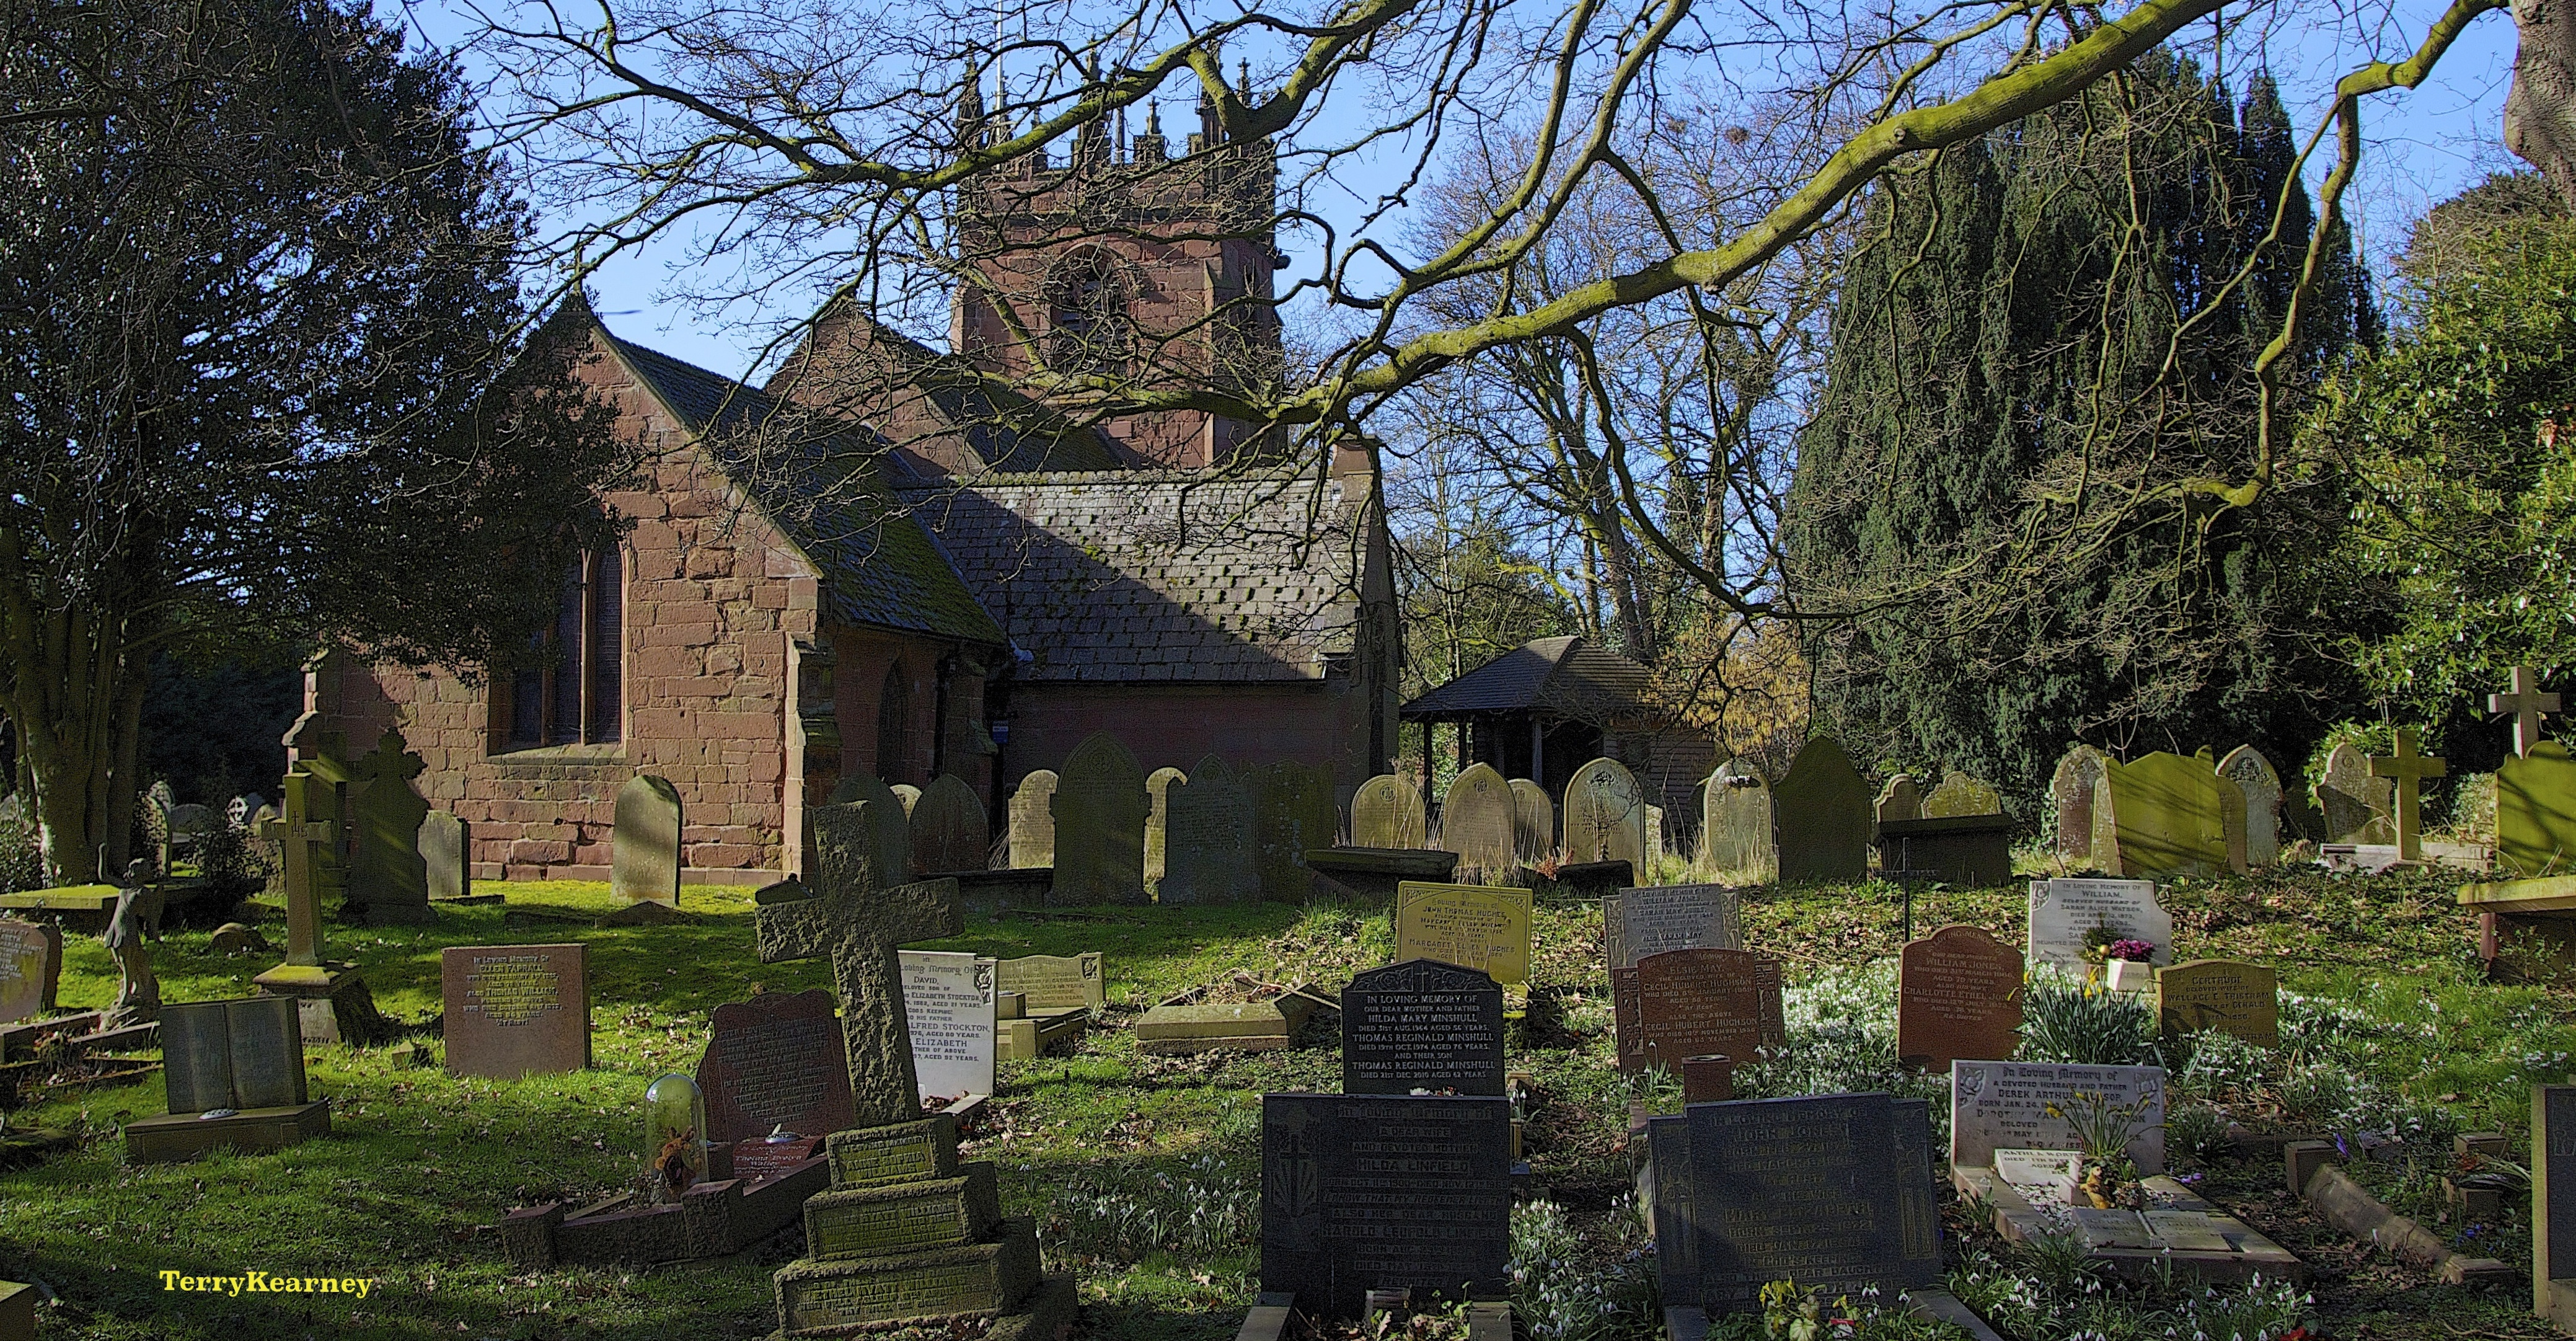 St oswald's churchyard at backford cheshire photo